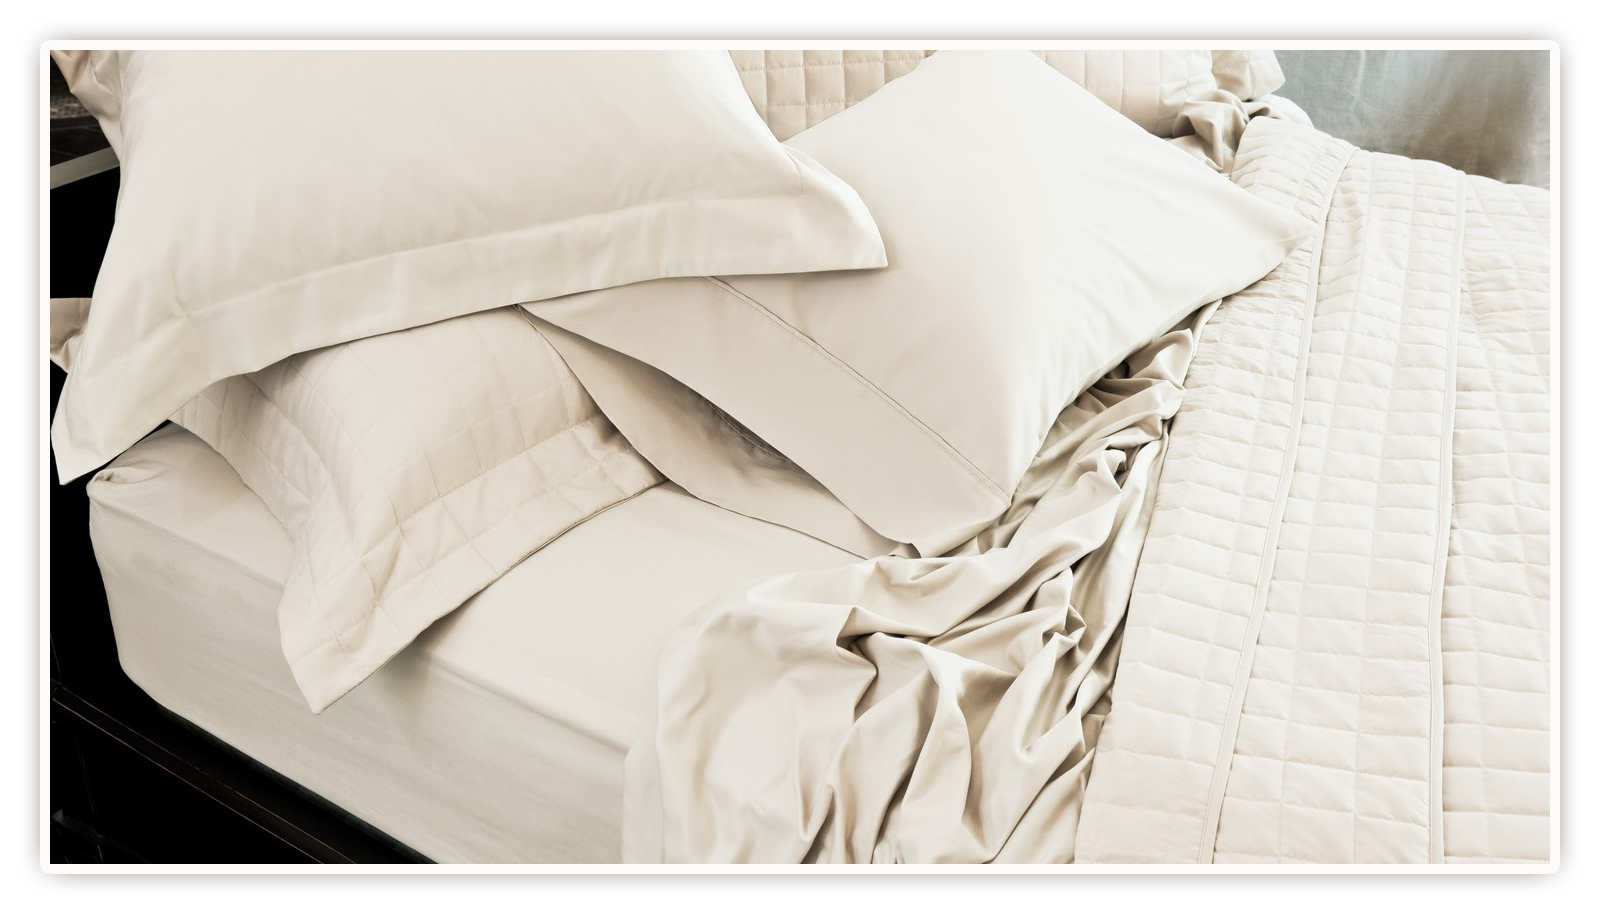 comphy co sheets cream Comphy Sheets